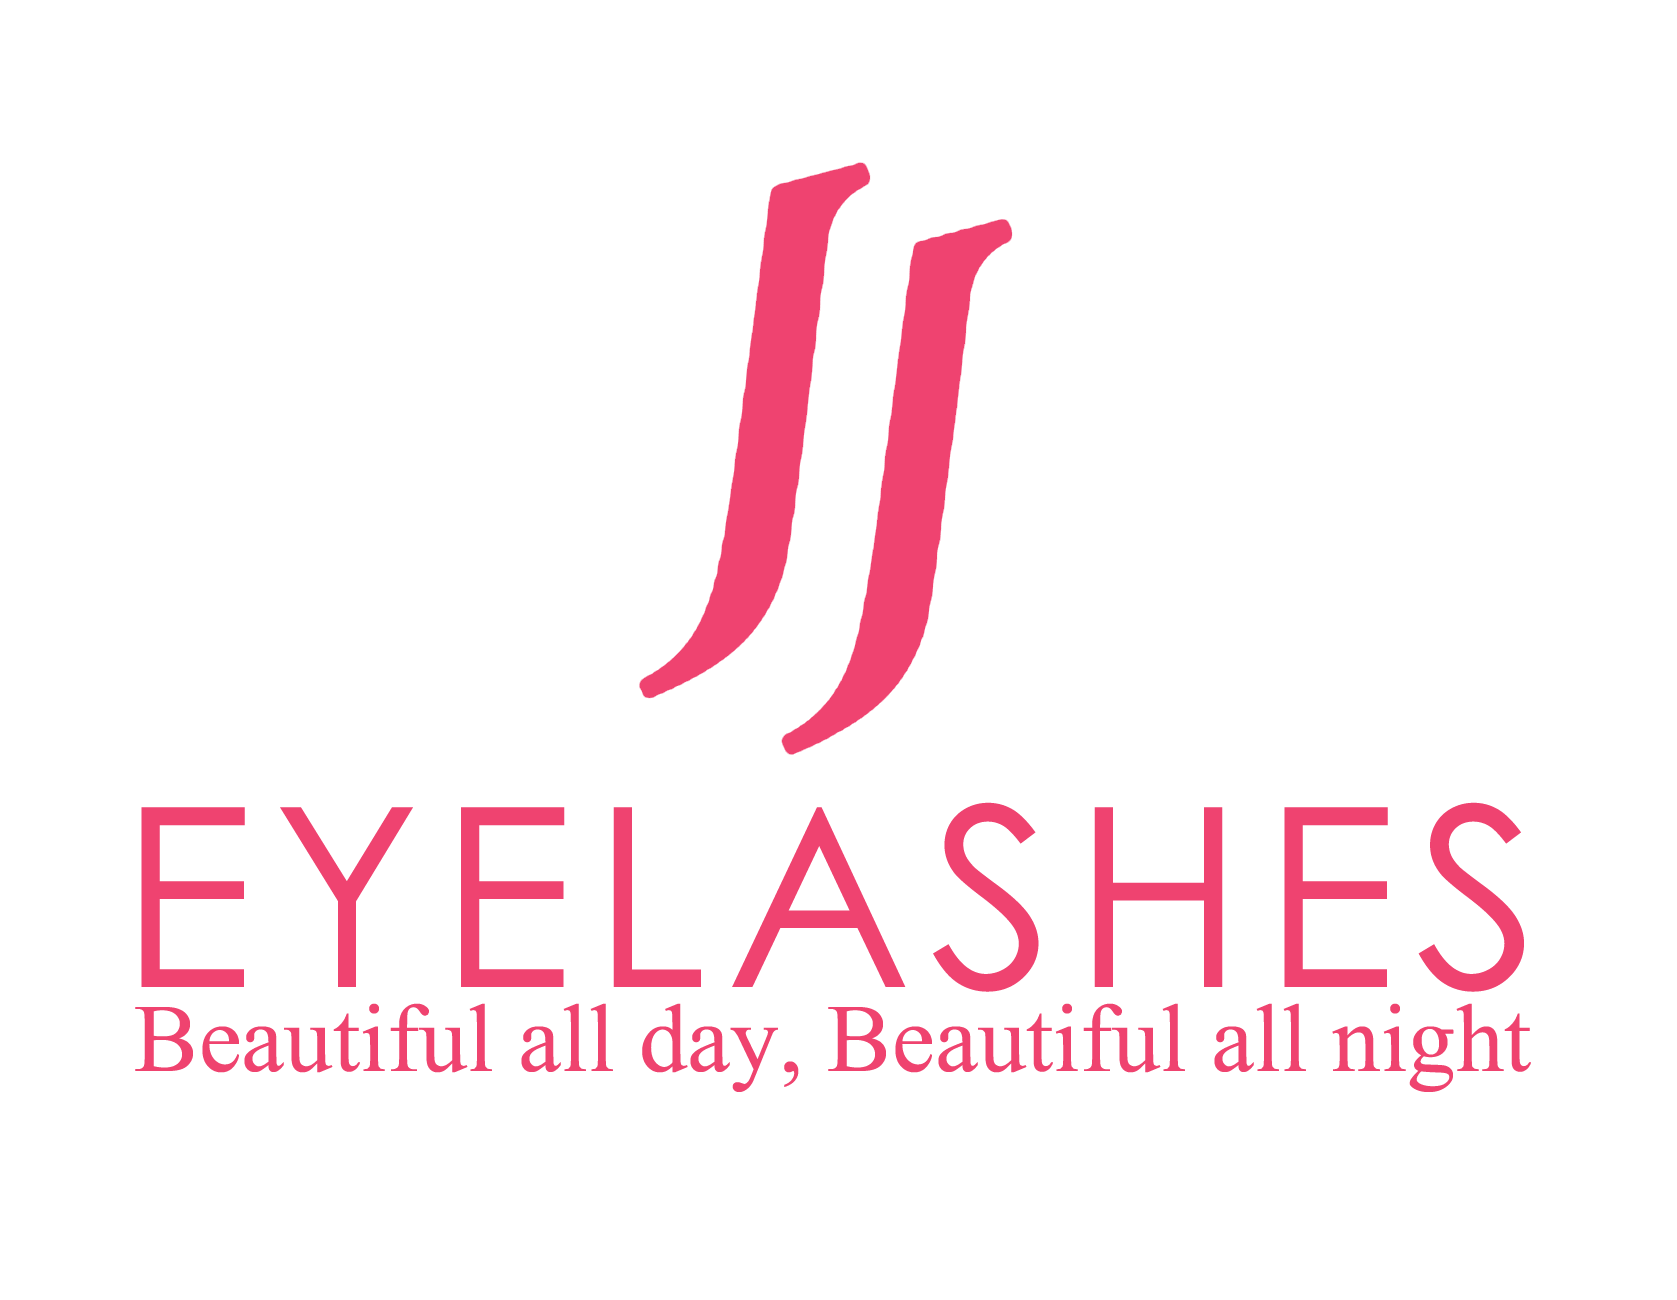 JJ Eyelashes Logo